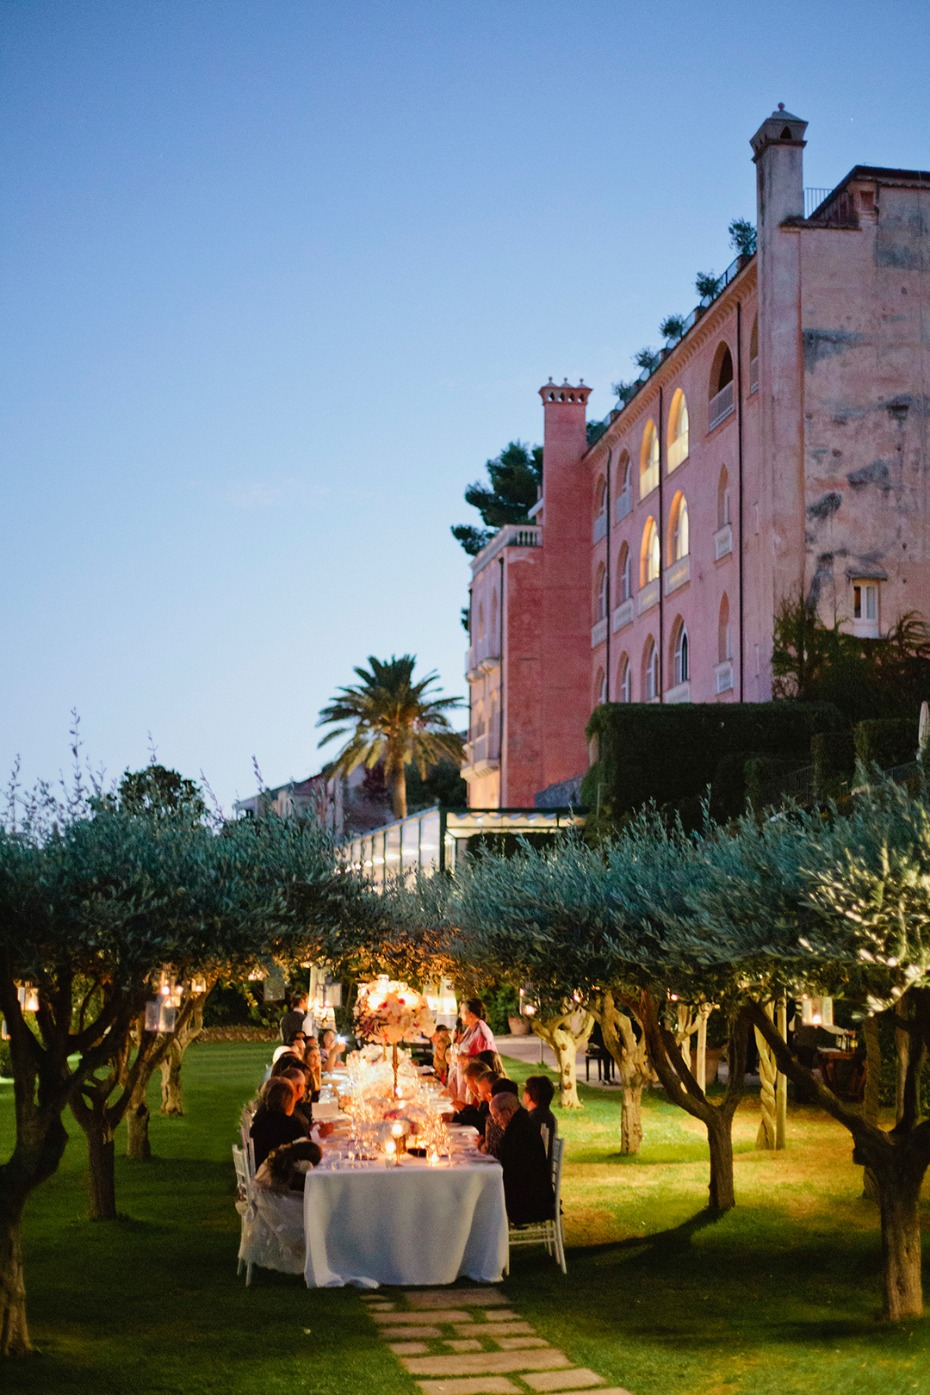 wedding reception in a romantic Italian garden